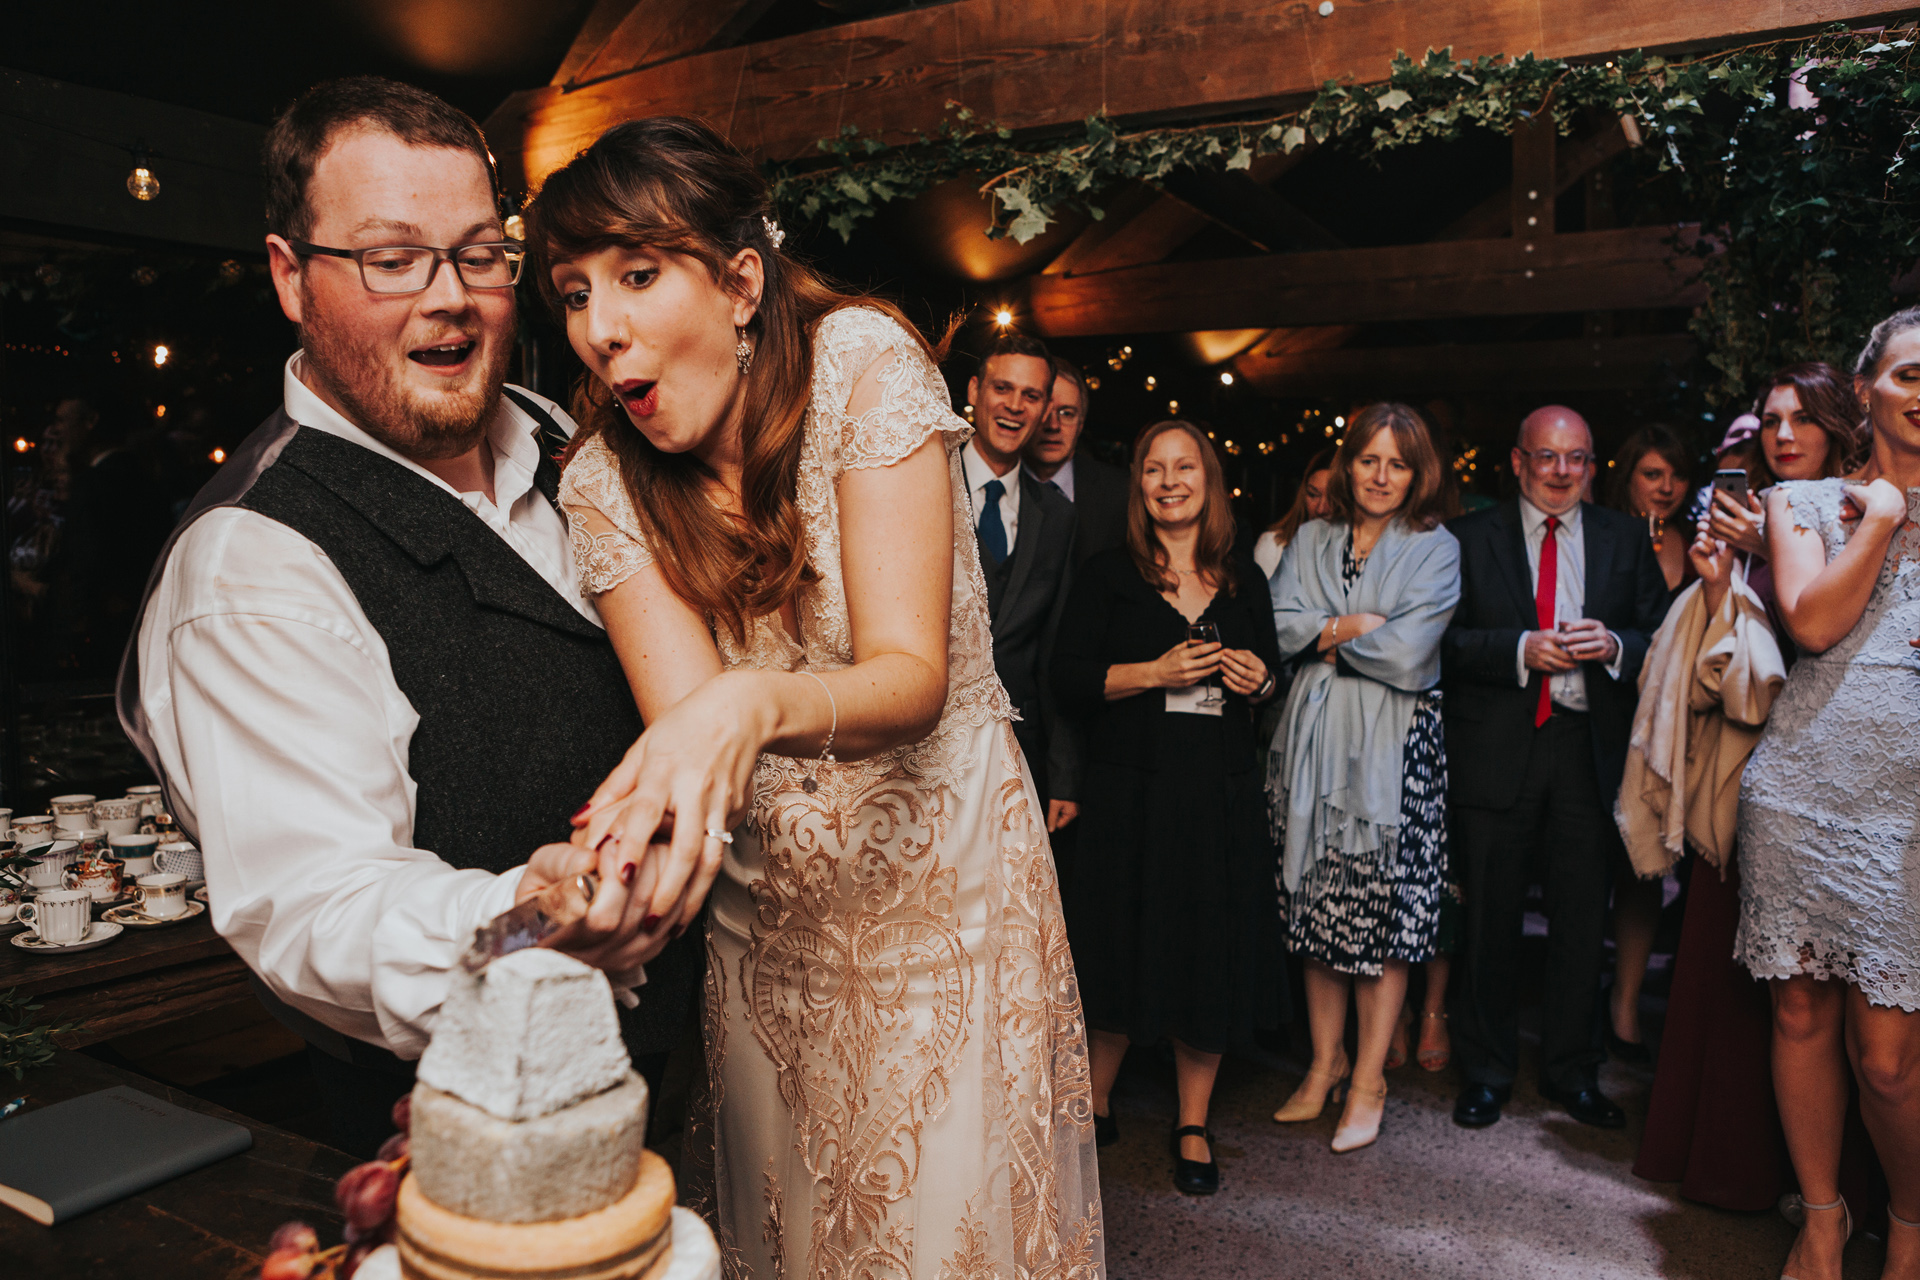 Bride and Groom cut cake with guests in background.